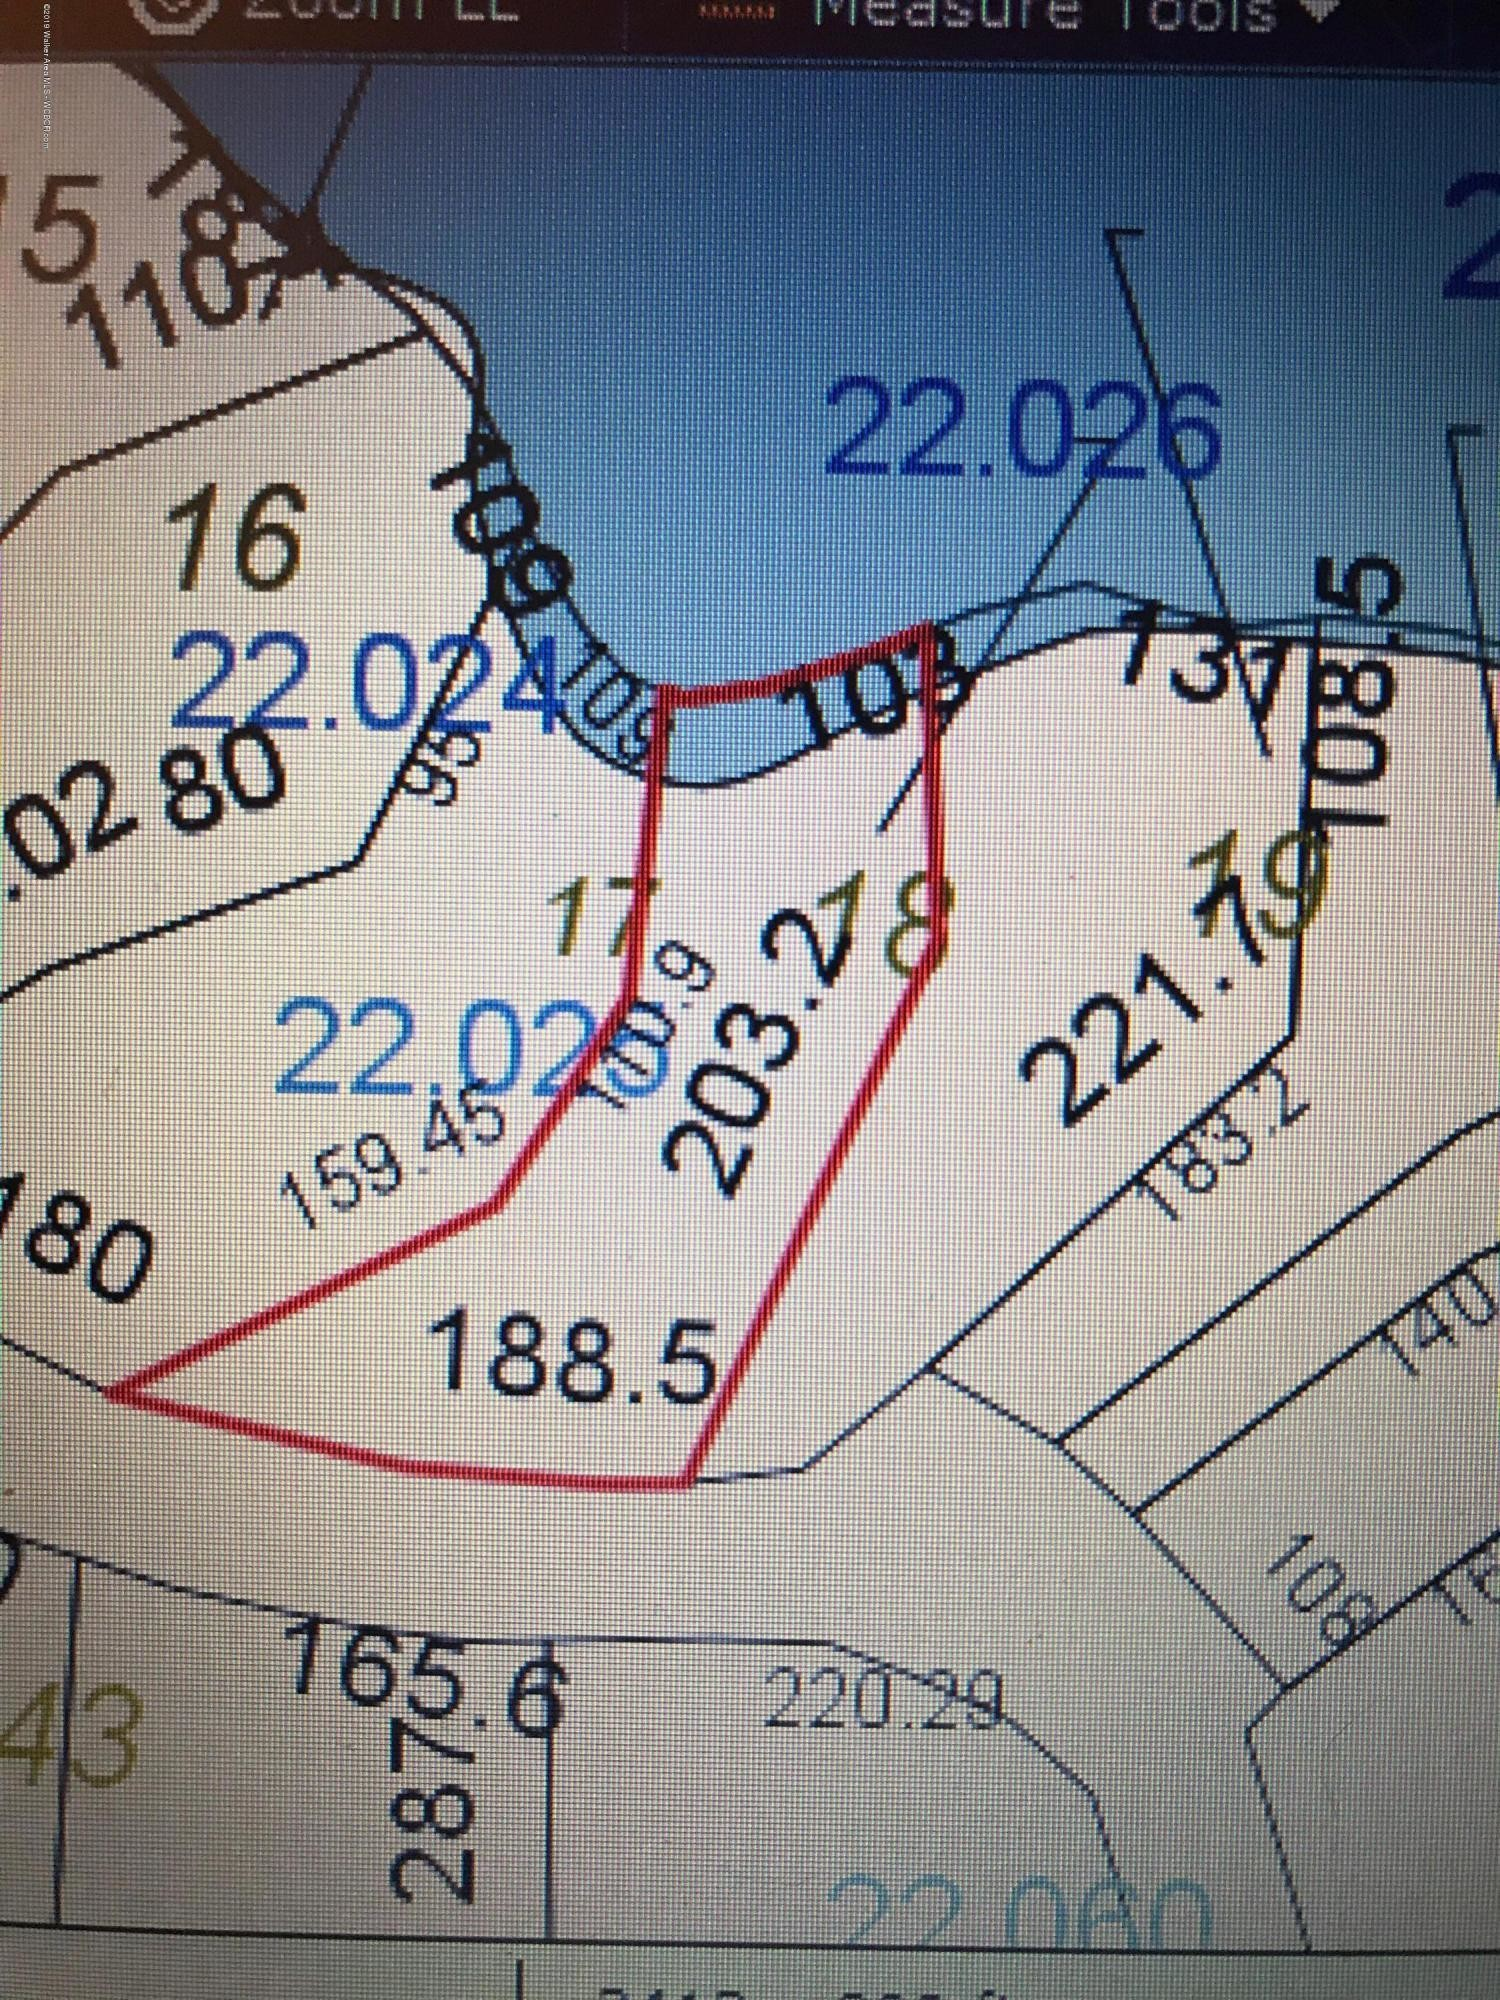 Lot In Double Springs